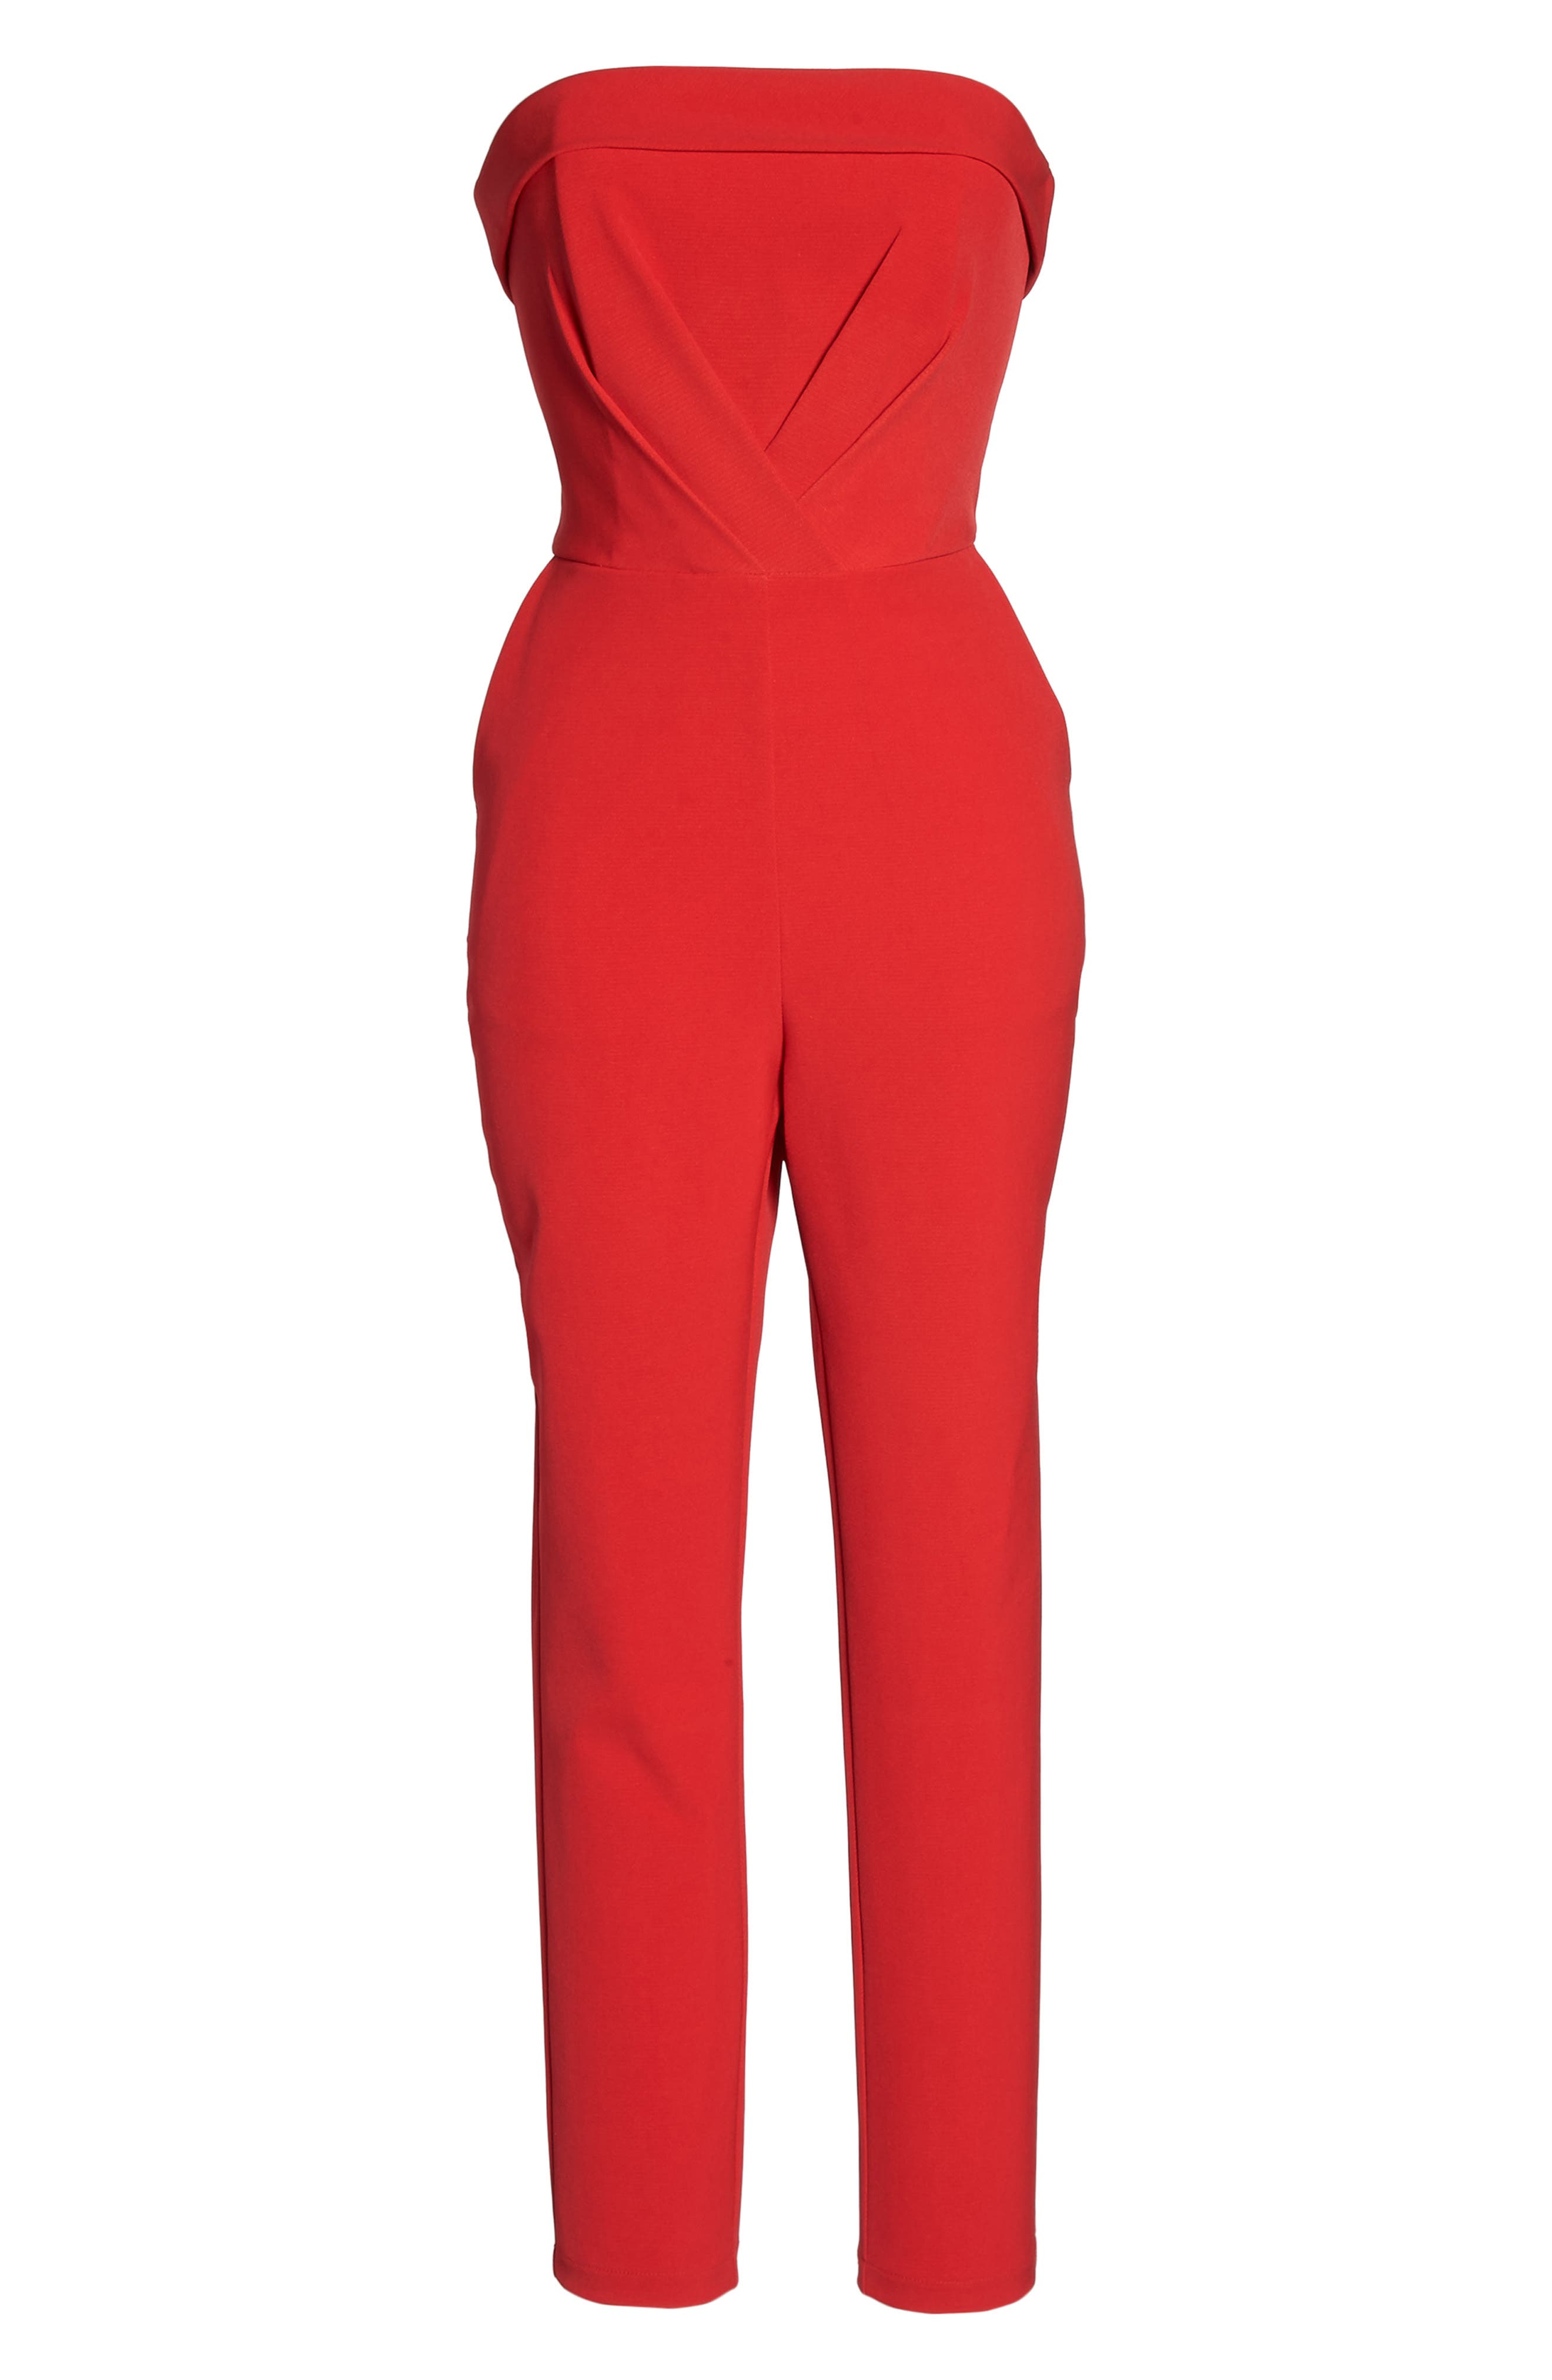 Malia Strapless Jumpsuit,                             Alternate thumbnail 6, color,                             Red